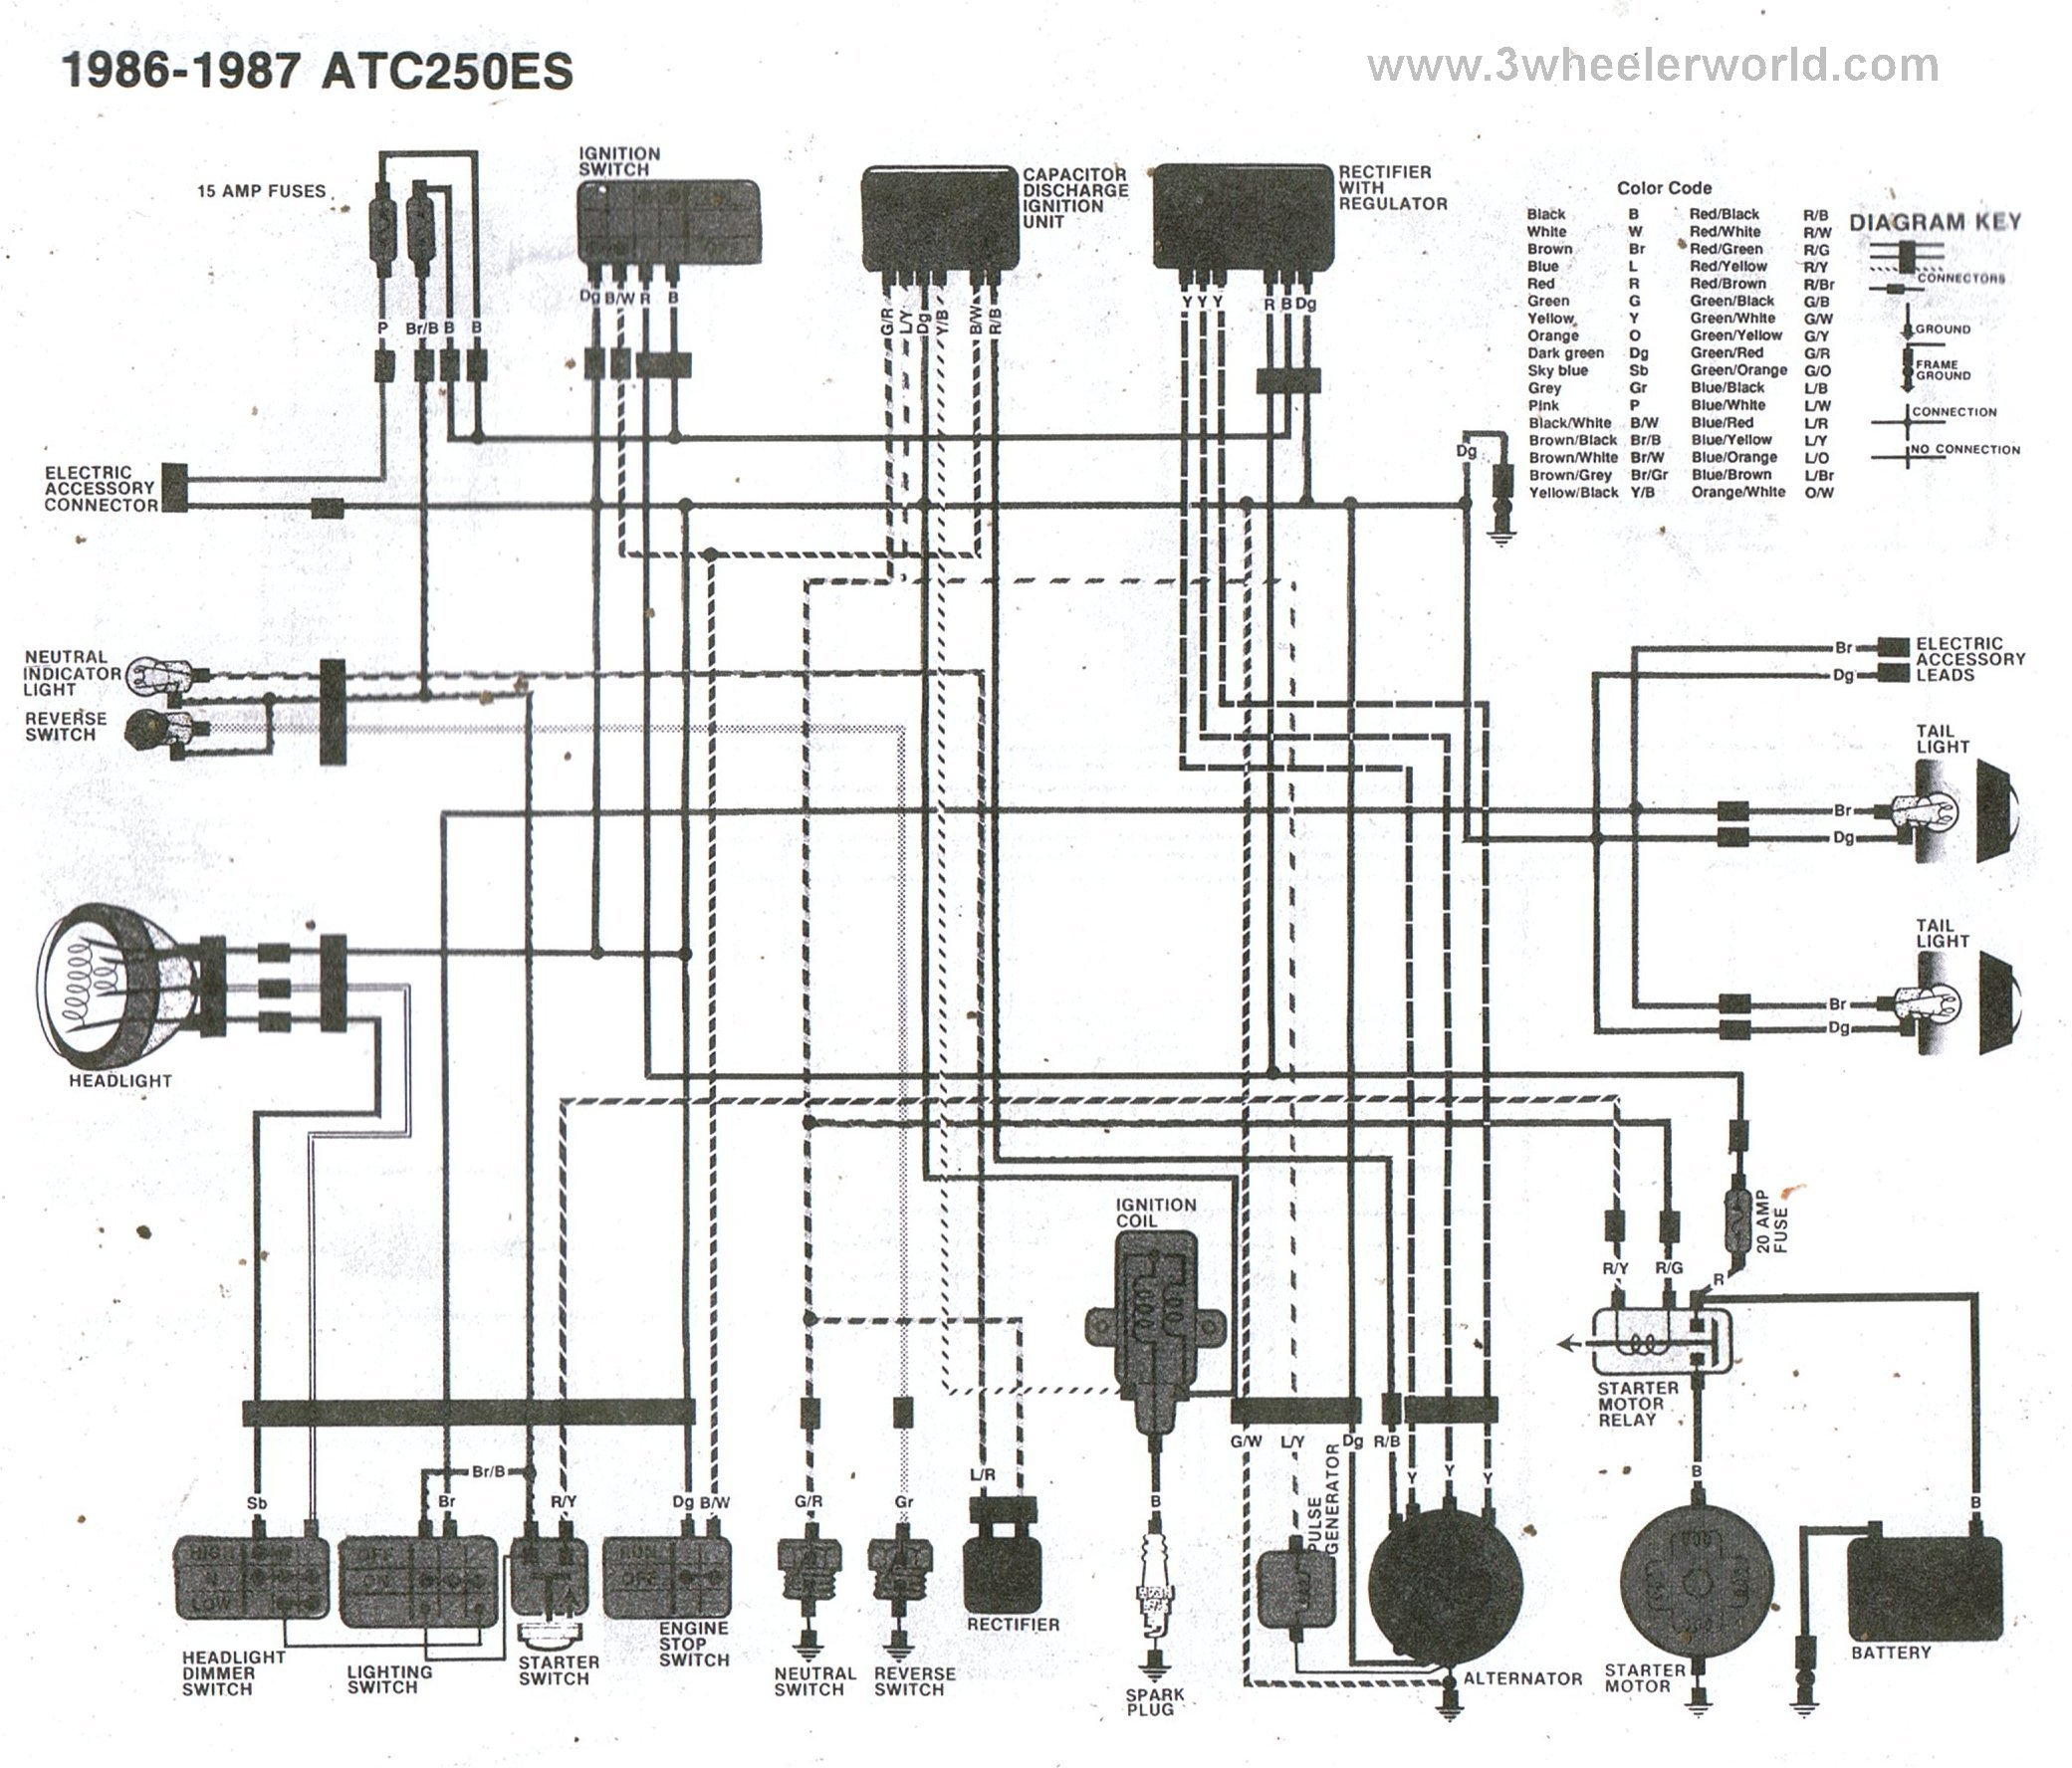 ATC250ESx86Thru87 3 wheeler world tech help honda wiring diagrams yamaha moto 4 250 wiring diagrams at highcare.asia